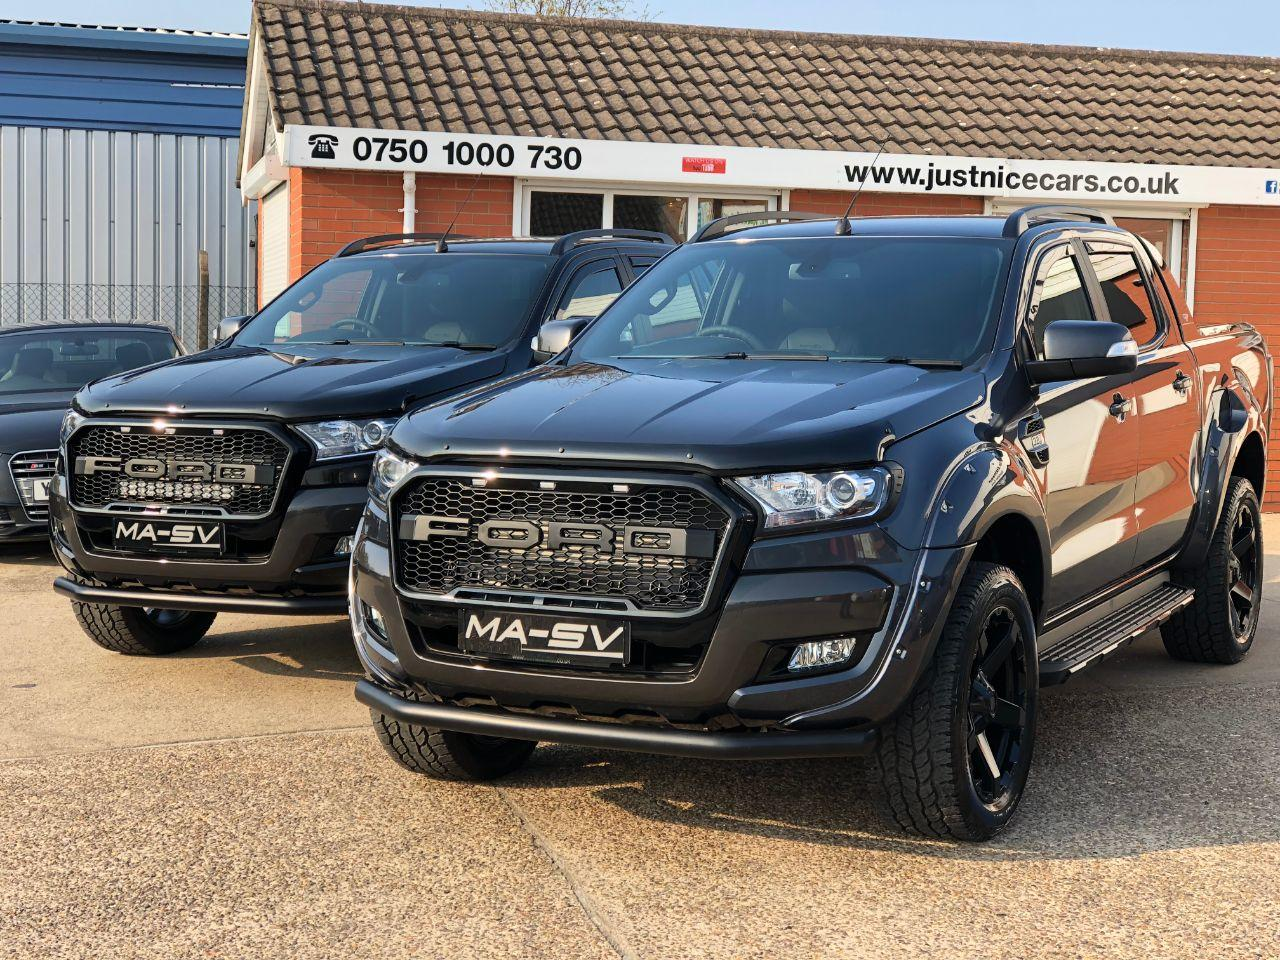 Ford Ranger 19/19 Wildtrak Auto 3.2 TDCI MA-SV Edition Pick Up Diesel Grey